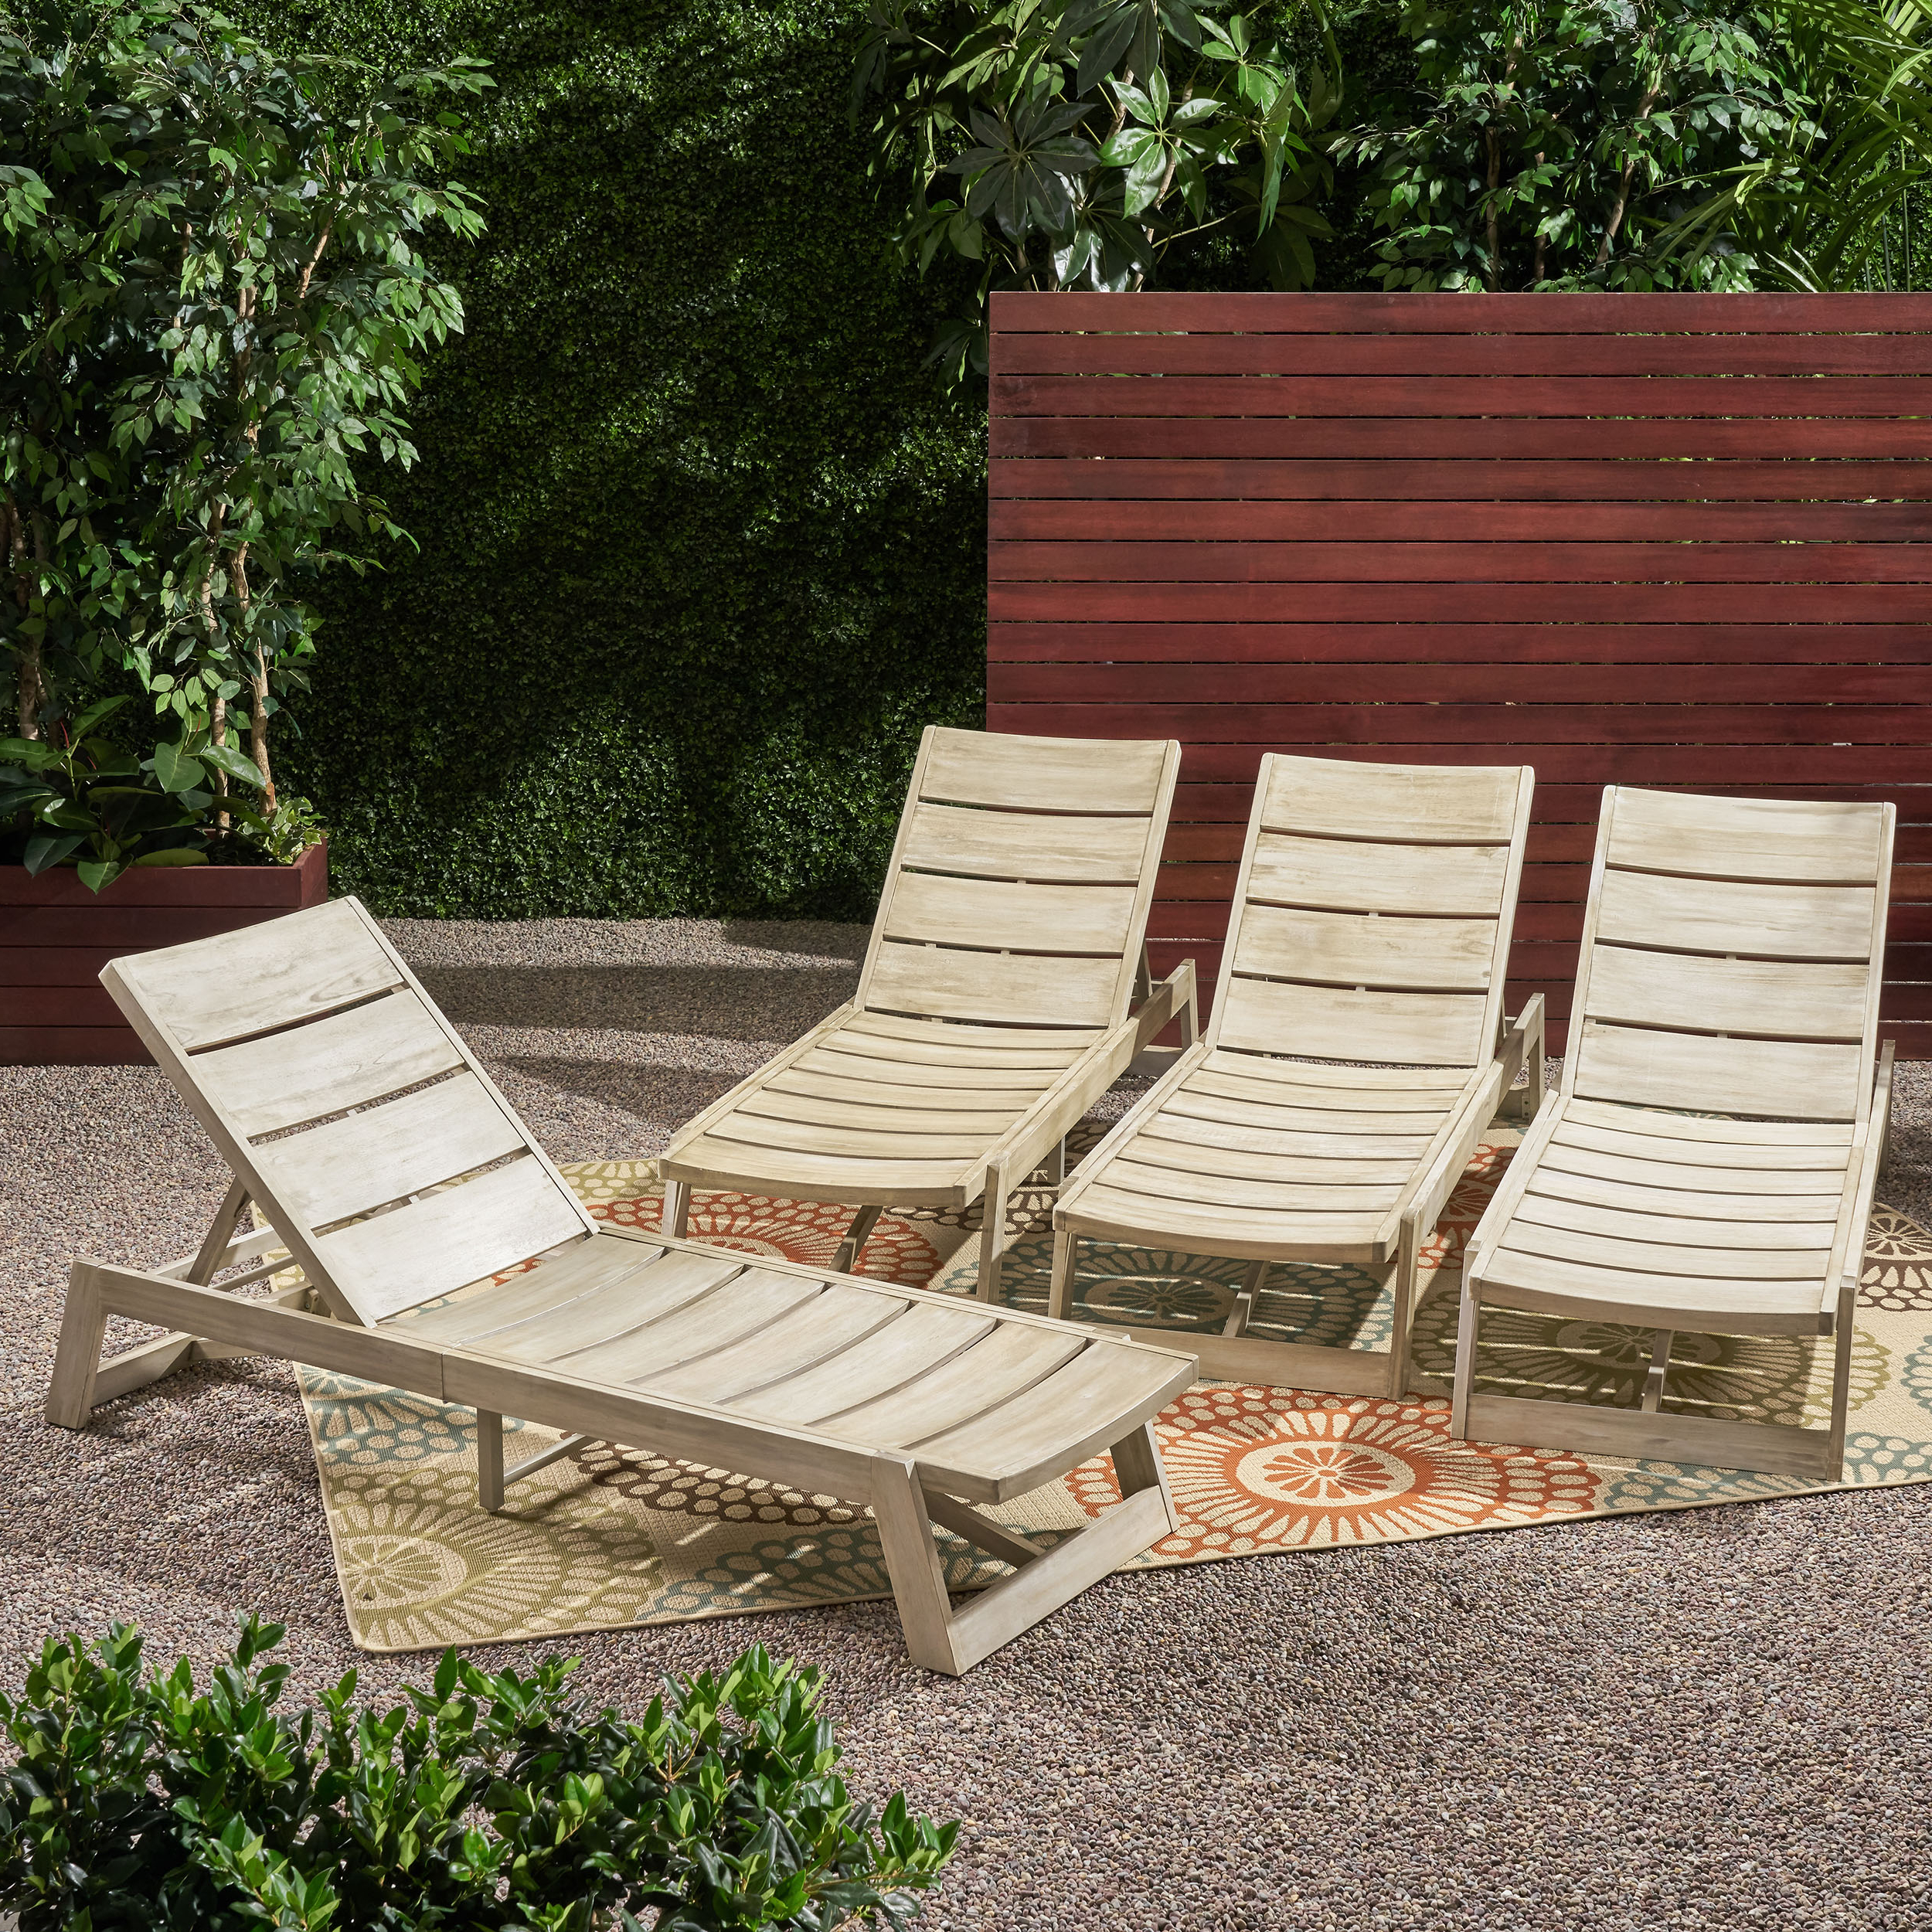 Fashionable Outdoor 3 Piece Acacia Wood Chaise Lounge Sets Within Details About Melissa Outdoor Acacia Wood Chaise Lounge (Set Of 4) (View 9 of 25)